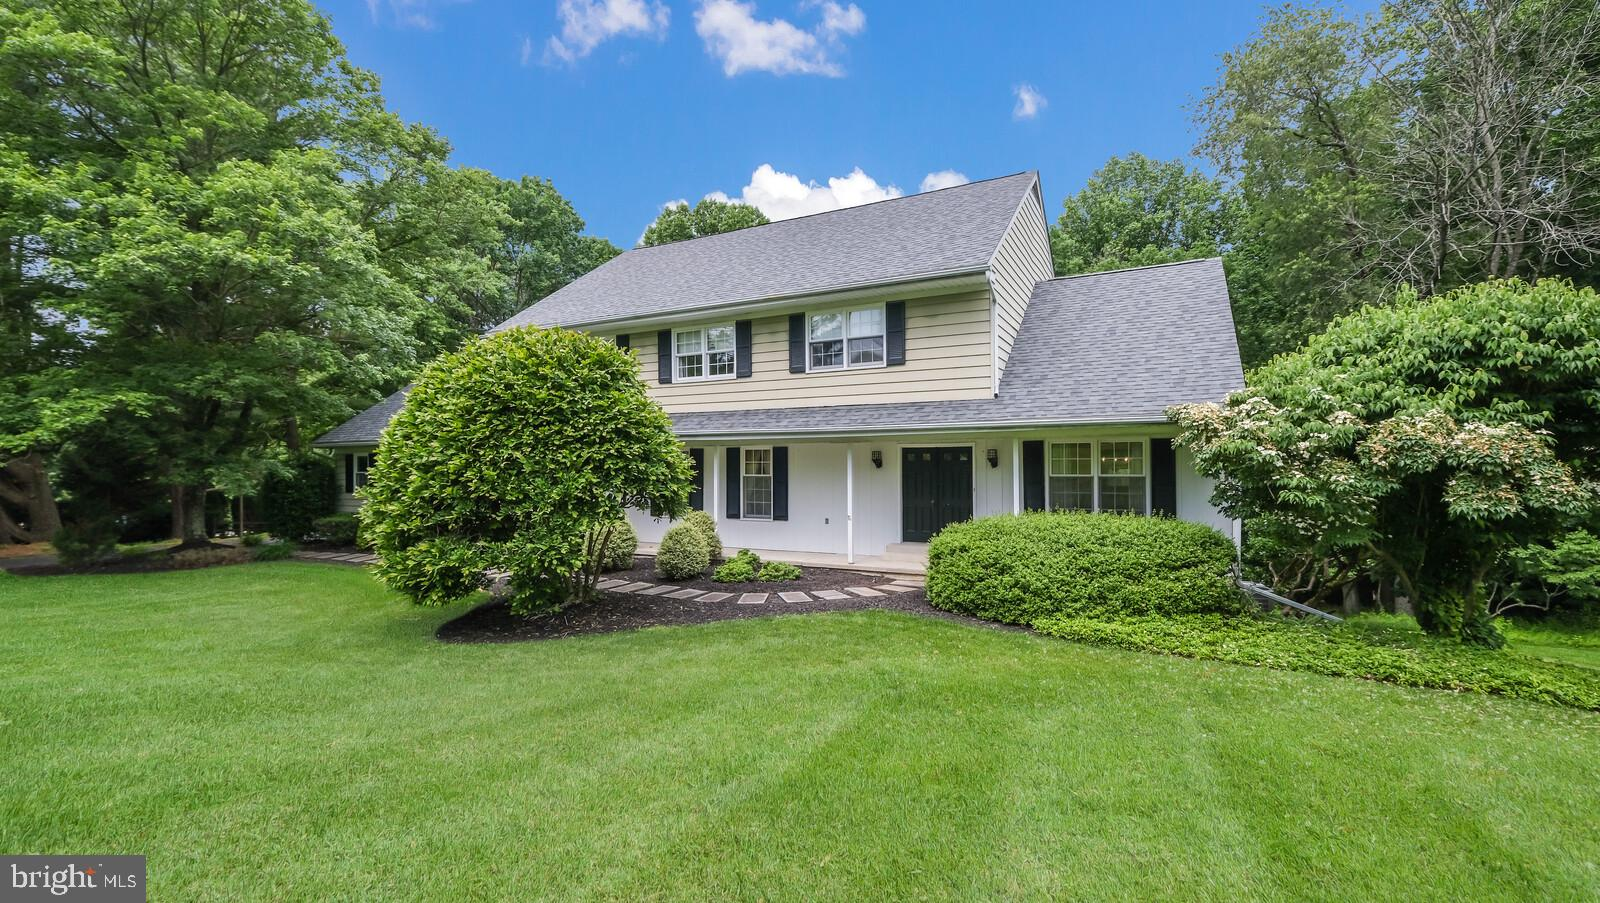 Well-maintained 4 bedroom, 2.5 bathroom home in Dilworthtown Oaks Community, with Unionville-Chadds Ford Schools! This beautiful home welcomes you with a covered front porch and double front door to the tiled foyer.  The main floor includes the living room, formal dining room, and behind them the open-concept kitchen, breakfast room and  huge family room stretching along the full length of the home.  The kitchen and spacious breakfast area have bright hardwood floors. The updated kitchen boasts granite countertops, tall cherry cabinets, sleek black appliances, two wall ovens (one convection),  a corner sink, dual peninsulas and a glass stove top.  The adjacent family room has a brick fireplace with a raised hearth, wall-to-wall carpet, a glass sliding door to the back deck,  and another door to the screened-in  back porch. Additional conveniences on the main level are a huge mudroom with access to the attached 2 car garage, closet space, laundry room with utility sink,  and a powder room.  Upstairs, the primary bedroom suite boasts a dressing area with convenient sink, walk-in closet with attic access, built-in shelving,  and an updated bathroom with a huge tile shower.  The other three spacious bedrooms on this level all have wall-to wall carpet, generous closet space, and lighted ceiling fans.  The hall bath has an updated vanity with two sinks, ceramic tile floor and tub shower.   The lower level of the home is partially finished with plenty of windows and a door to the back yard, wall-to-wall carpet, dropped ceiling and overhead lighting. There is also plenty of unfinished storage space on this level and rough-in plumbing that offers the possibility of an additional bathroom.  Lots of  lovely outdoor spaces complete this home, including the front porch, rear deck, rear screened-in porch with a concrete floor, shades and a view of the beautiful backyard and tall trees beyond.  The large  2 car garage has extra storage and a vaulted ceiling.  Mature trees and plan